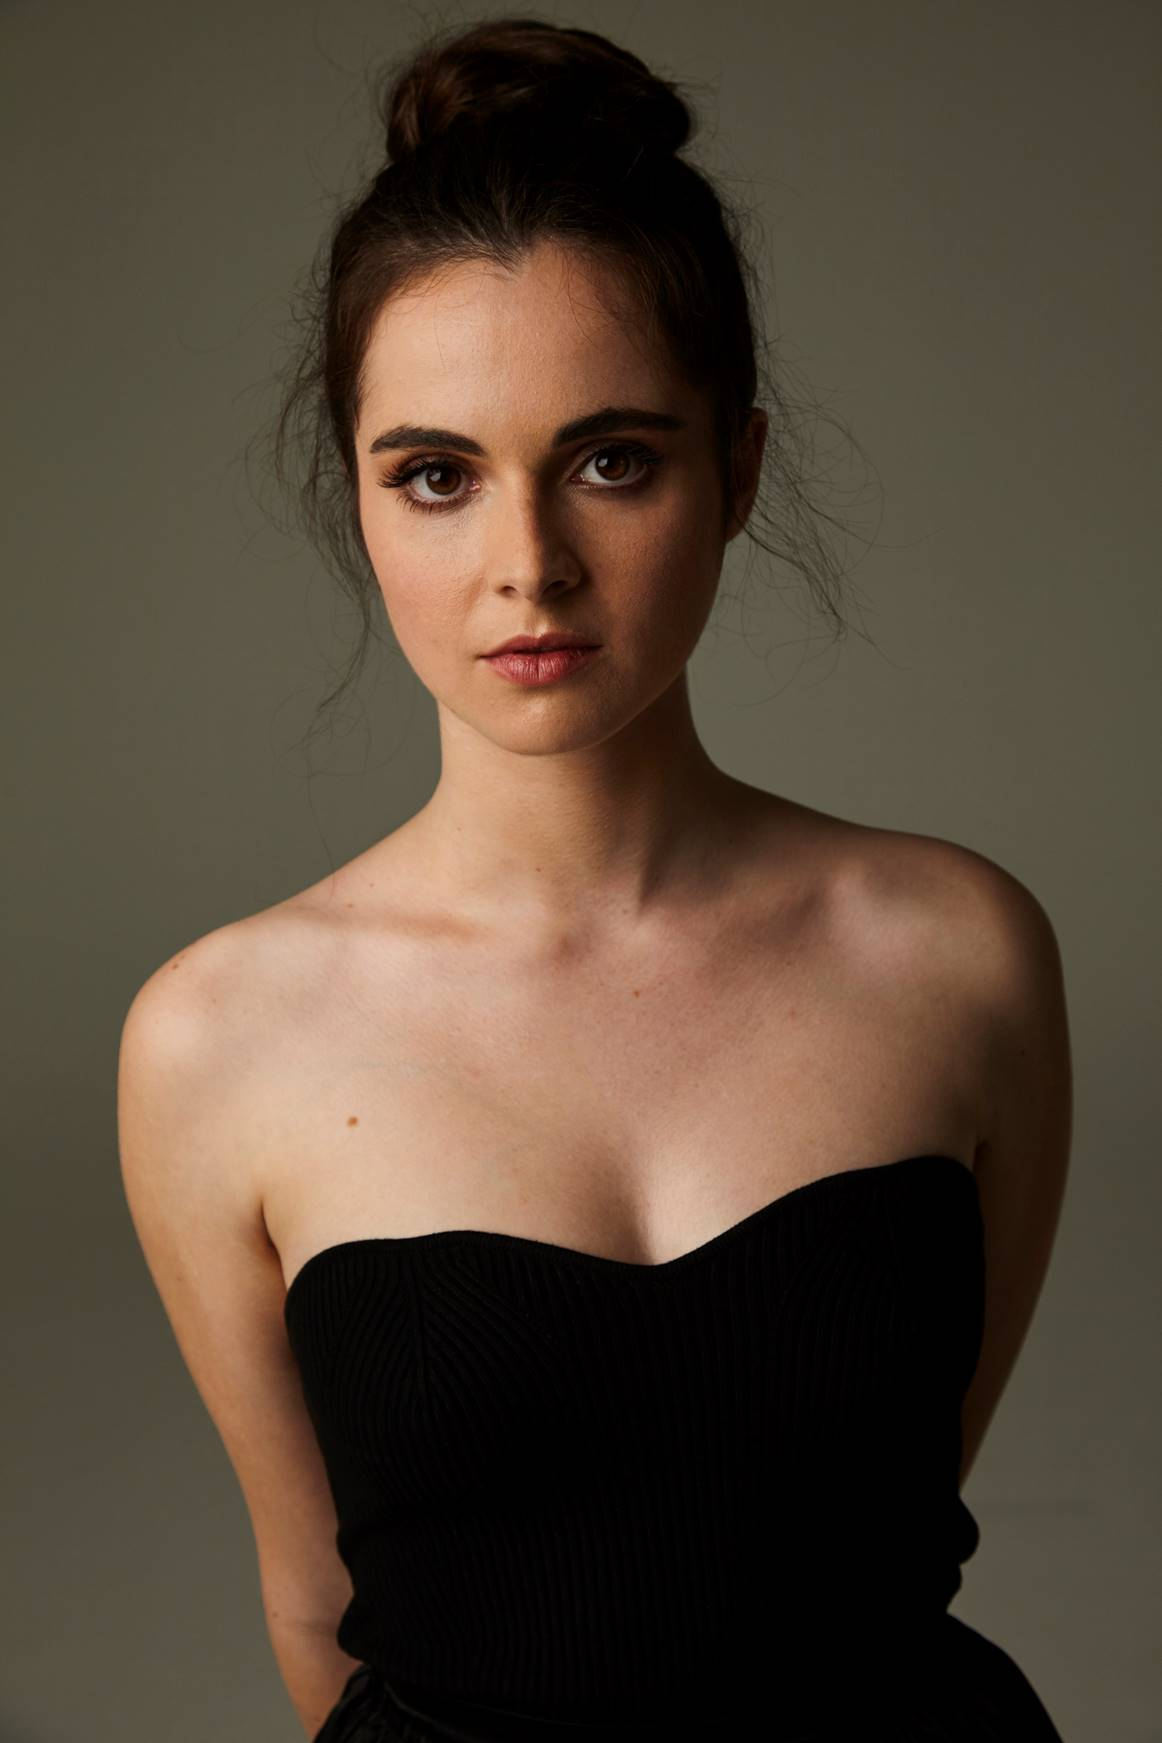 A picture of a girl wearing a strapless black dress